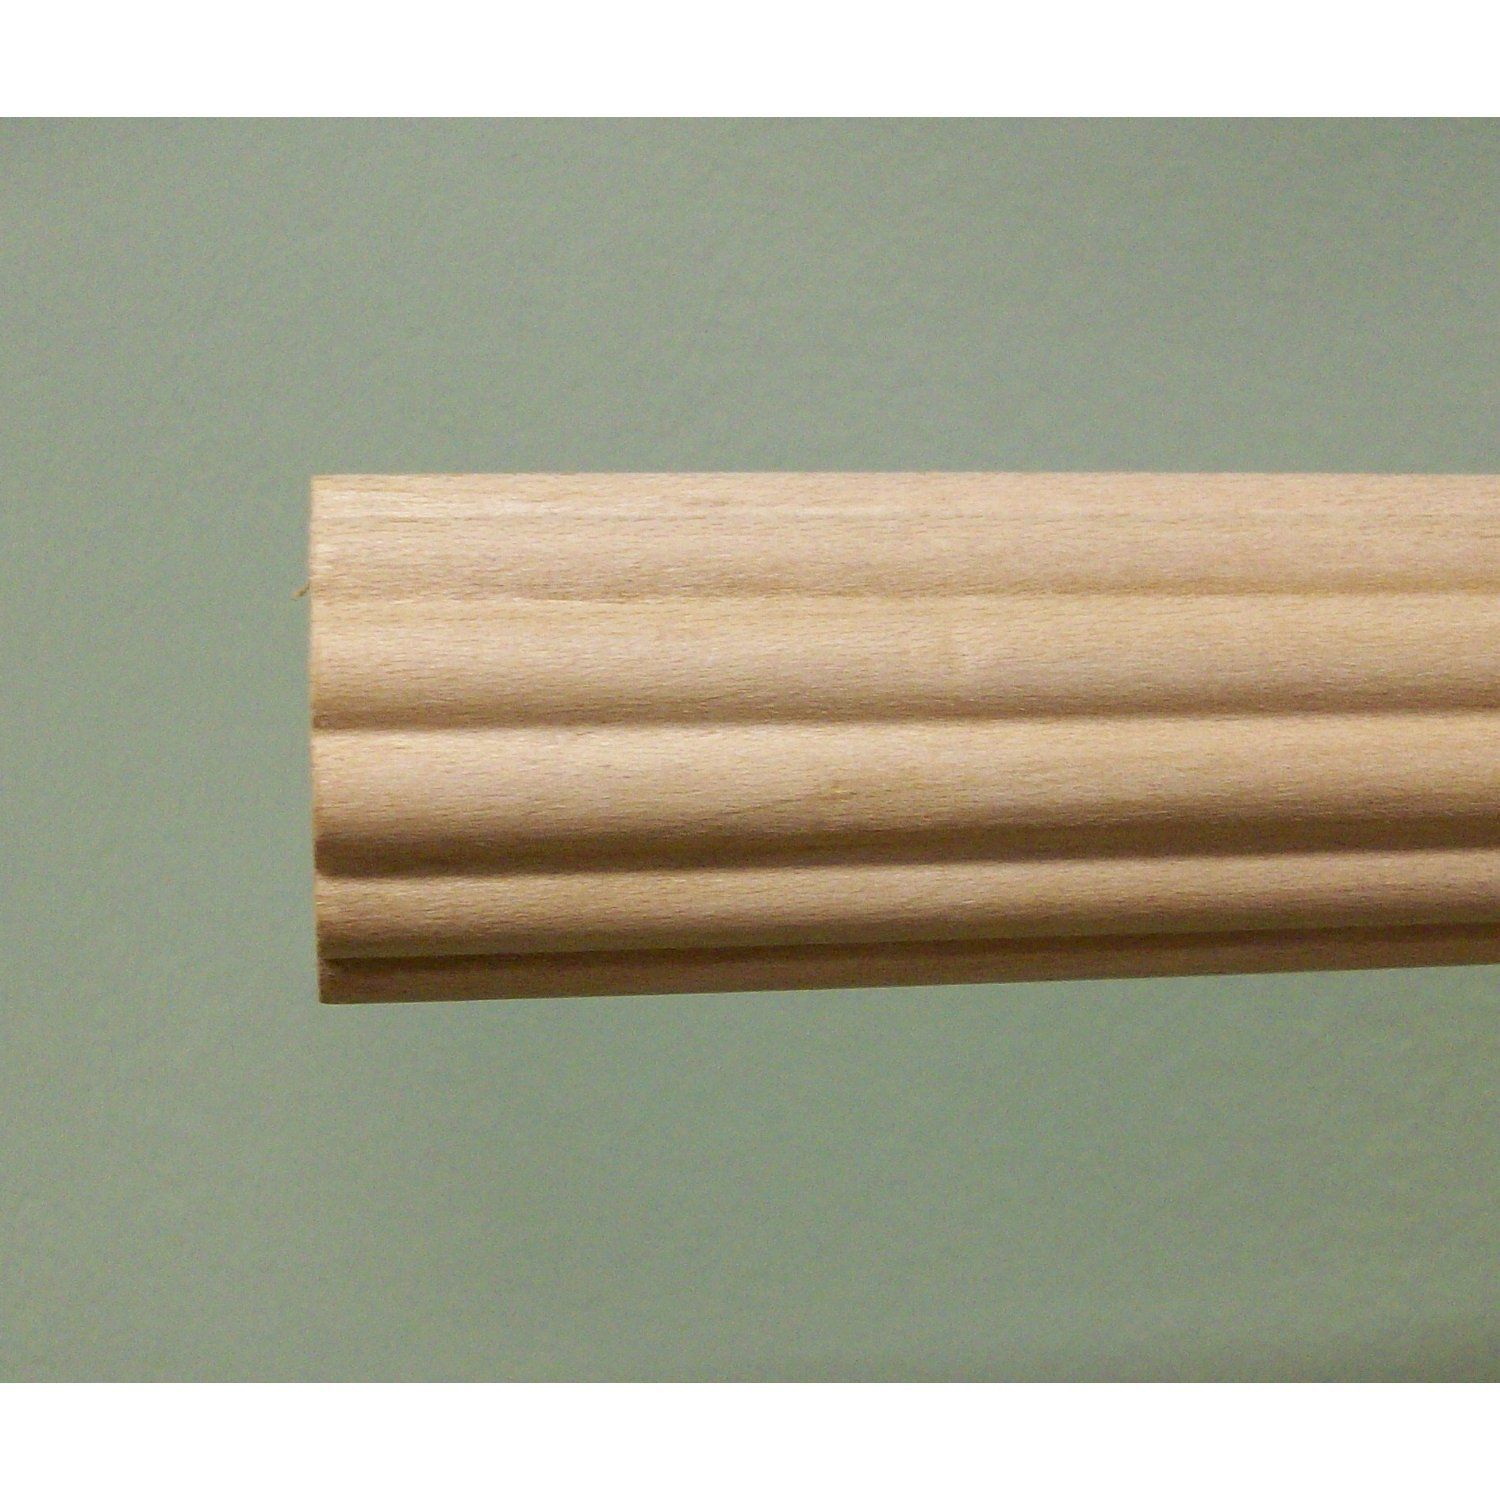 1-3/8 inch Wood Fluted Drapery Rod, UnFinished - 6' long [DISCOUNT AVAILABLE]